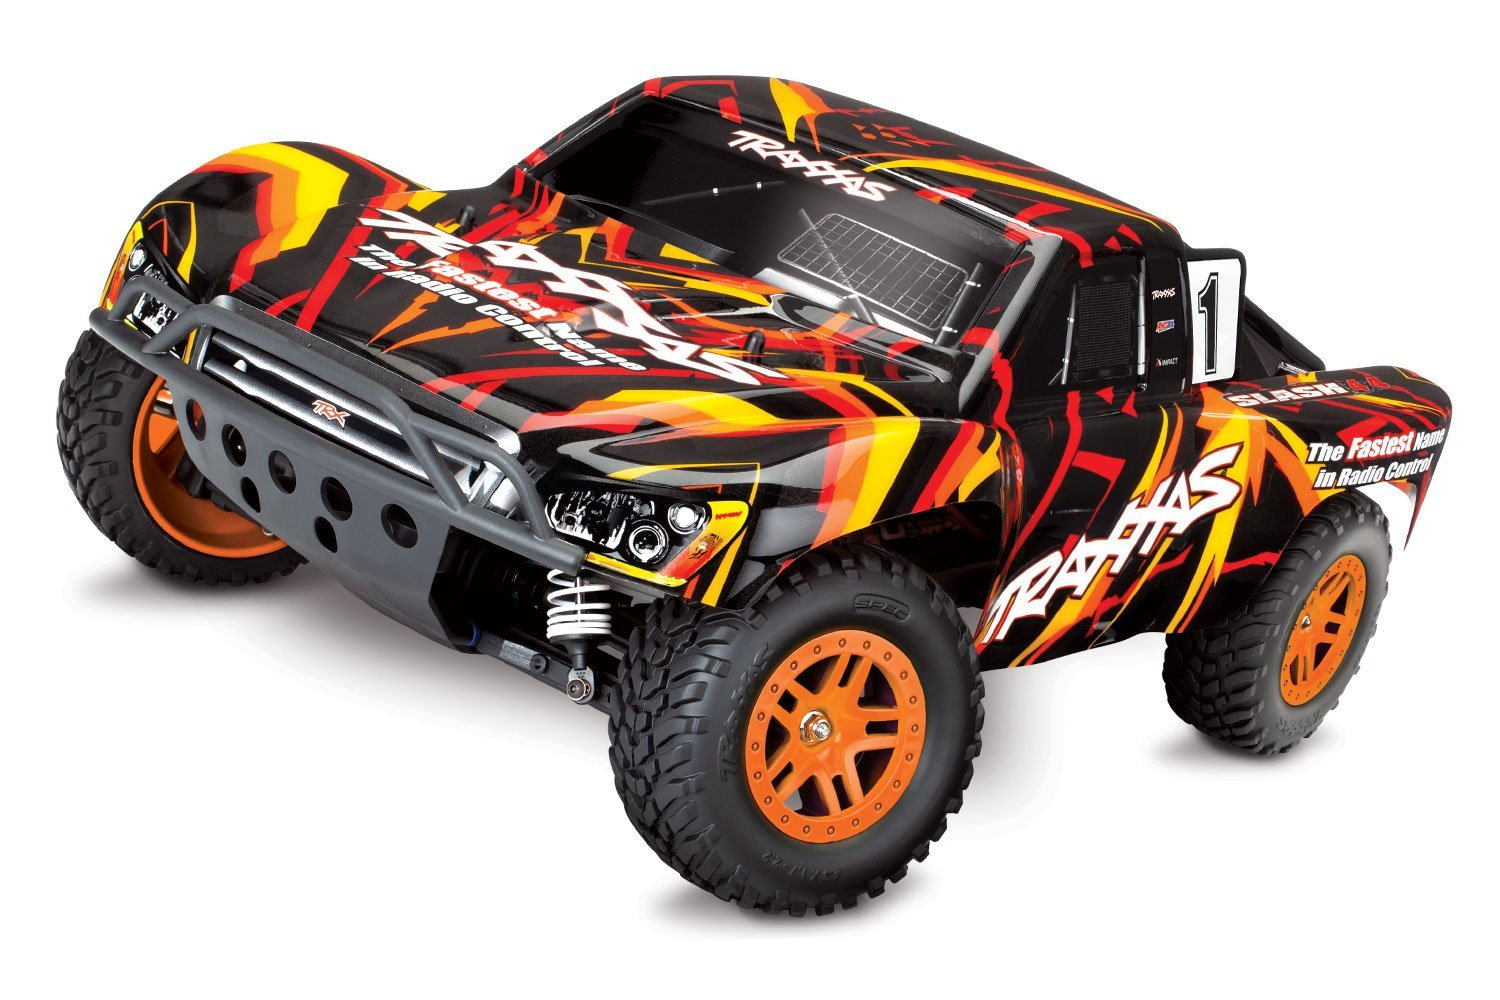 Traxxas 1/10 Slash 4x4 Electric Off Road Electric Brushed RC Short Course Truck